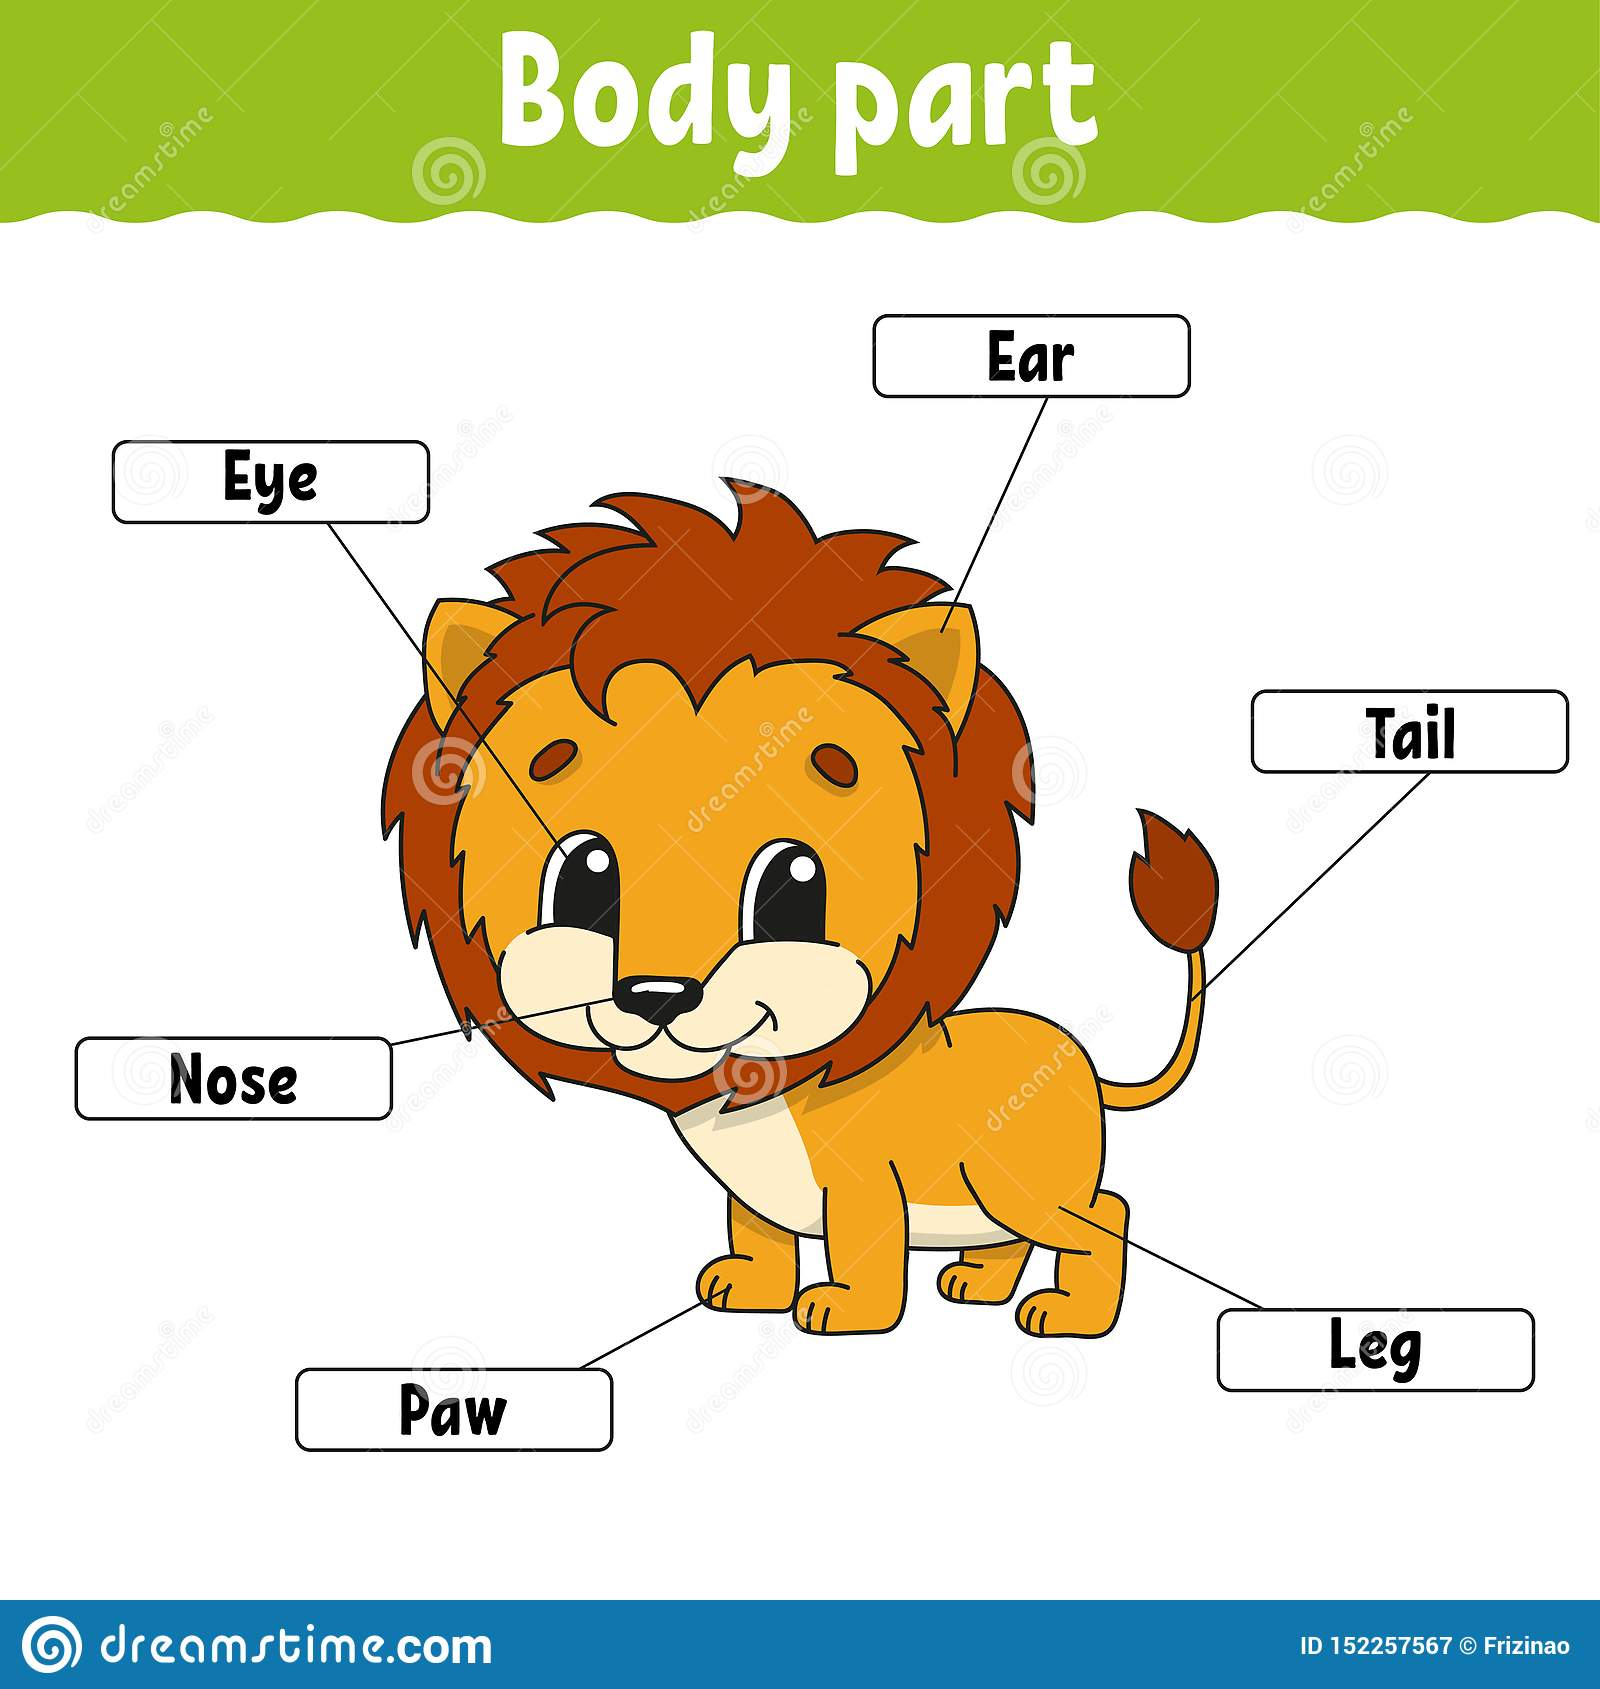 Body Part Learning Words Education Developing Worksheet